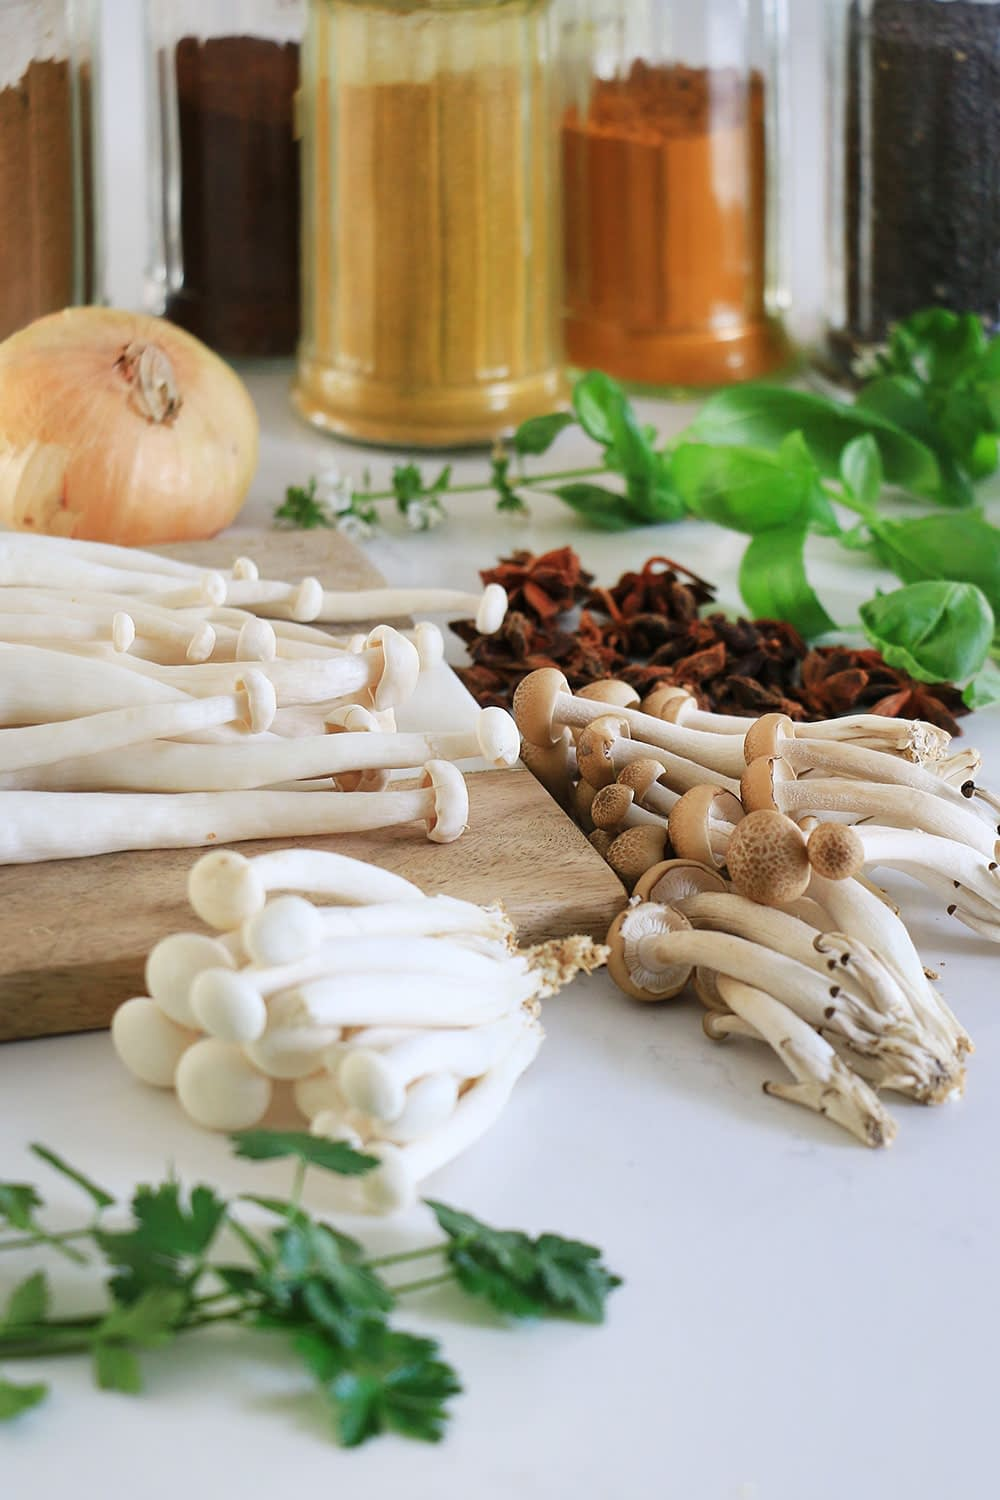 Beech mushrooms and enoki